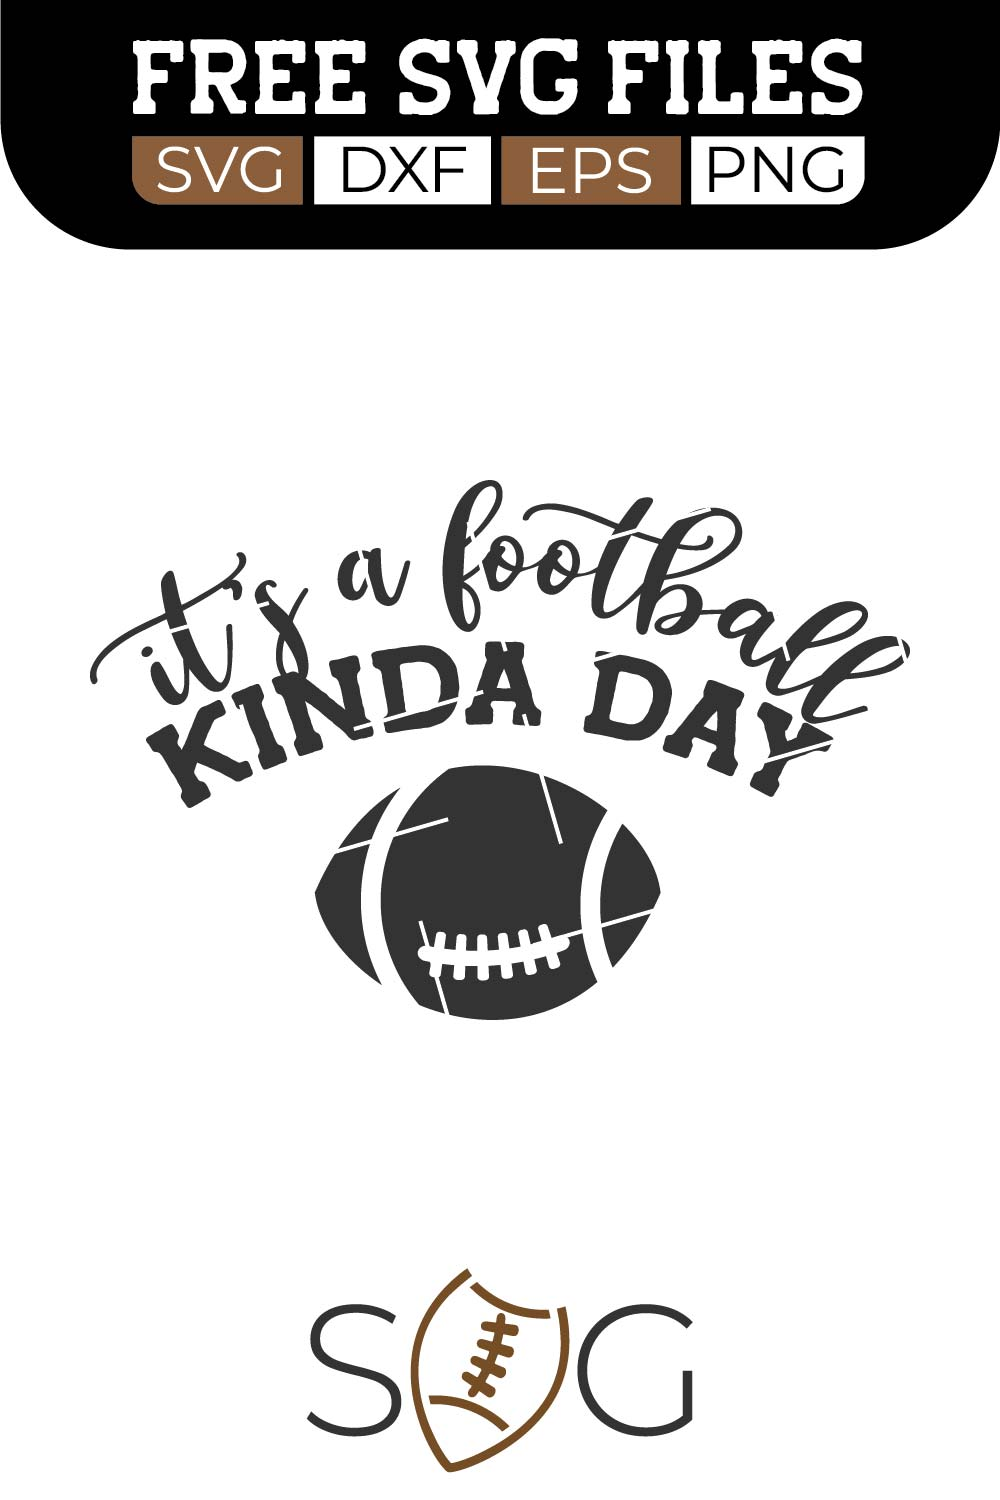 football, free, svg free, svg cut files free, download, cut file, nfl, print svg, digital prints, art svg, cut svg, vector, digital,